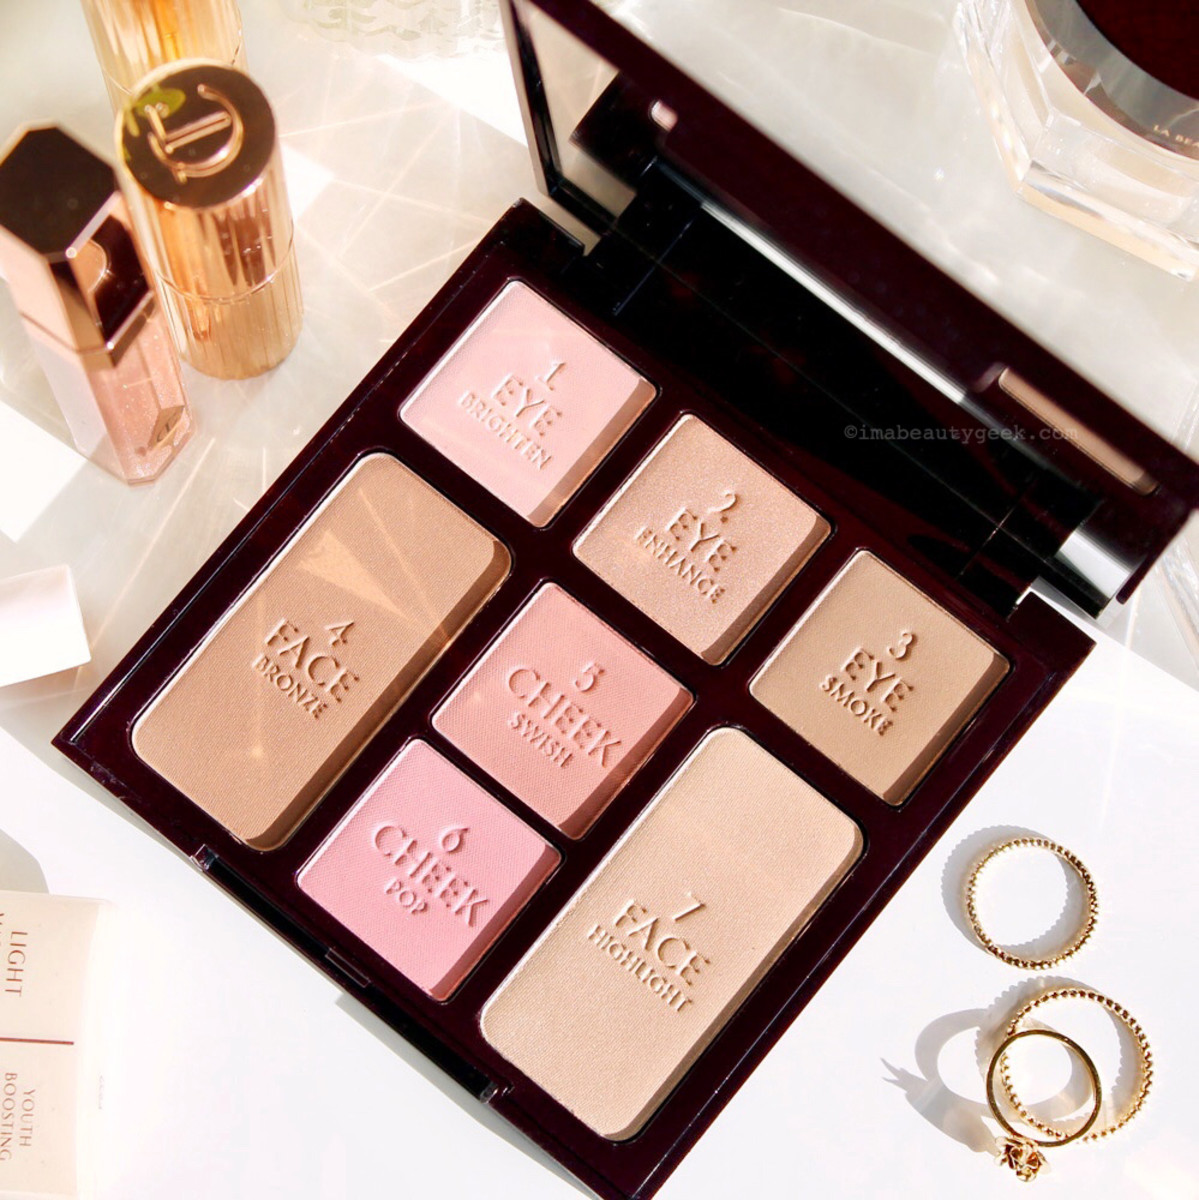 Charlotte Tilbury Natural Beauty Instant Look in a Palette: more neutral than cool shadows, but def not warm